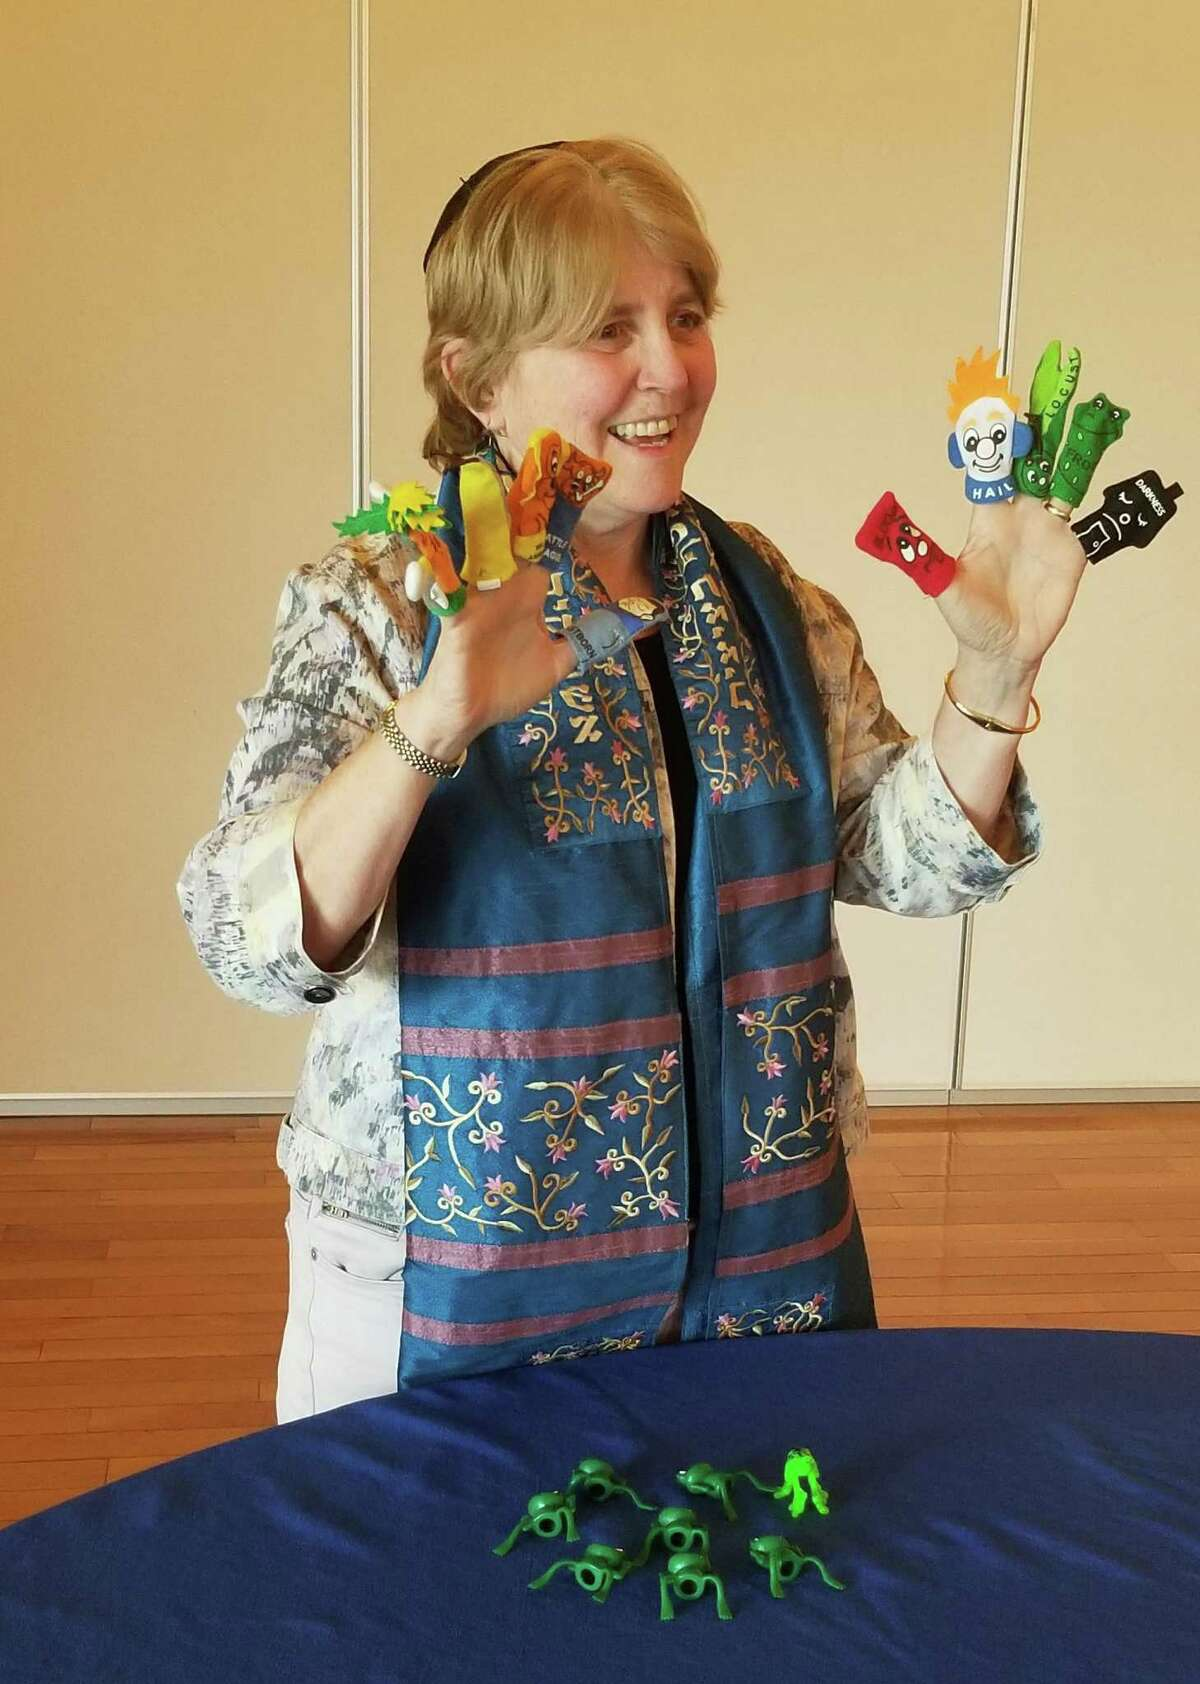 Passover celebrates freedom. Using finger puppets to represent the ten plagues, which are part of the story, can help bring it alive for children, says Rabbi Laurie Gold. Plastic frogs (on the table) can help, too. Gold is the rabbi at Temple Beth Elohim in Brewster, New York, just over the Connecticut border.